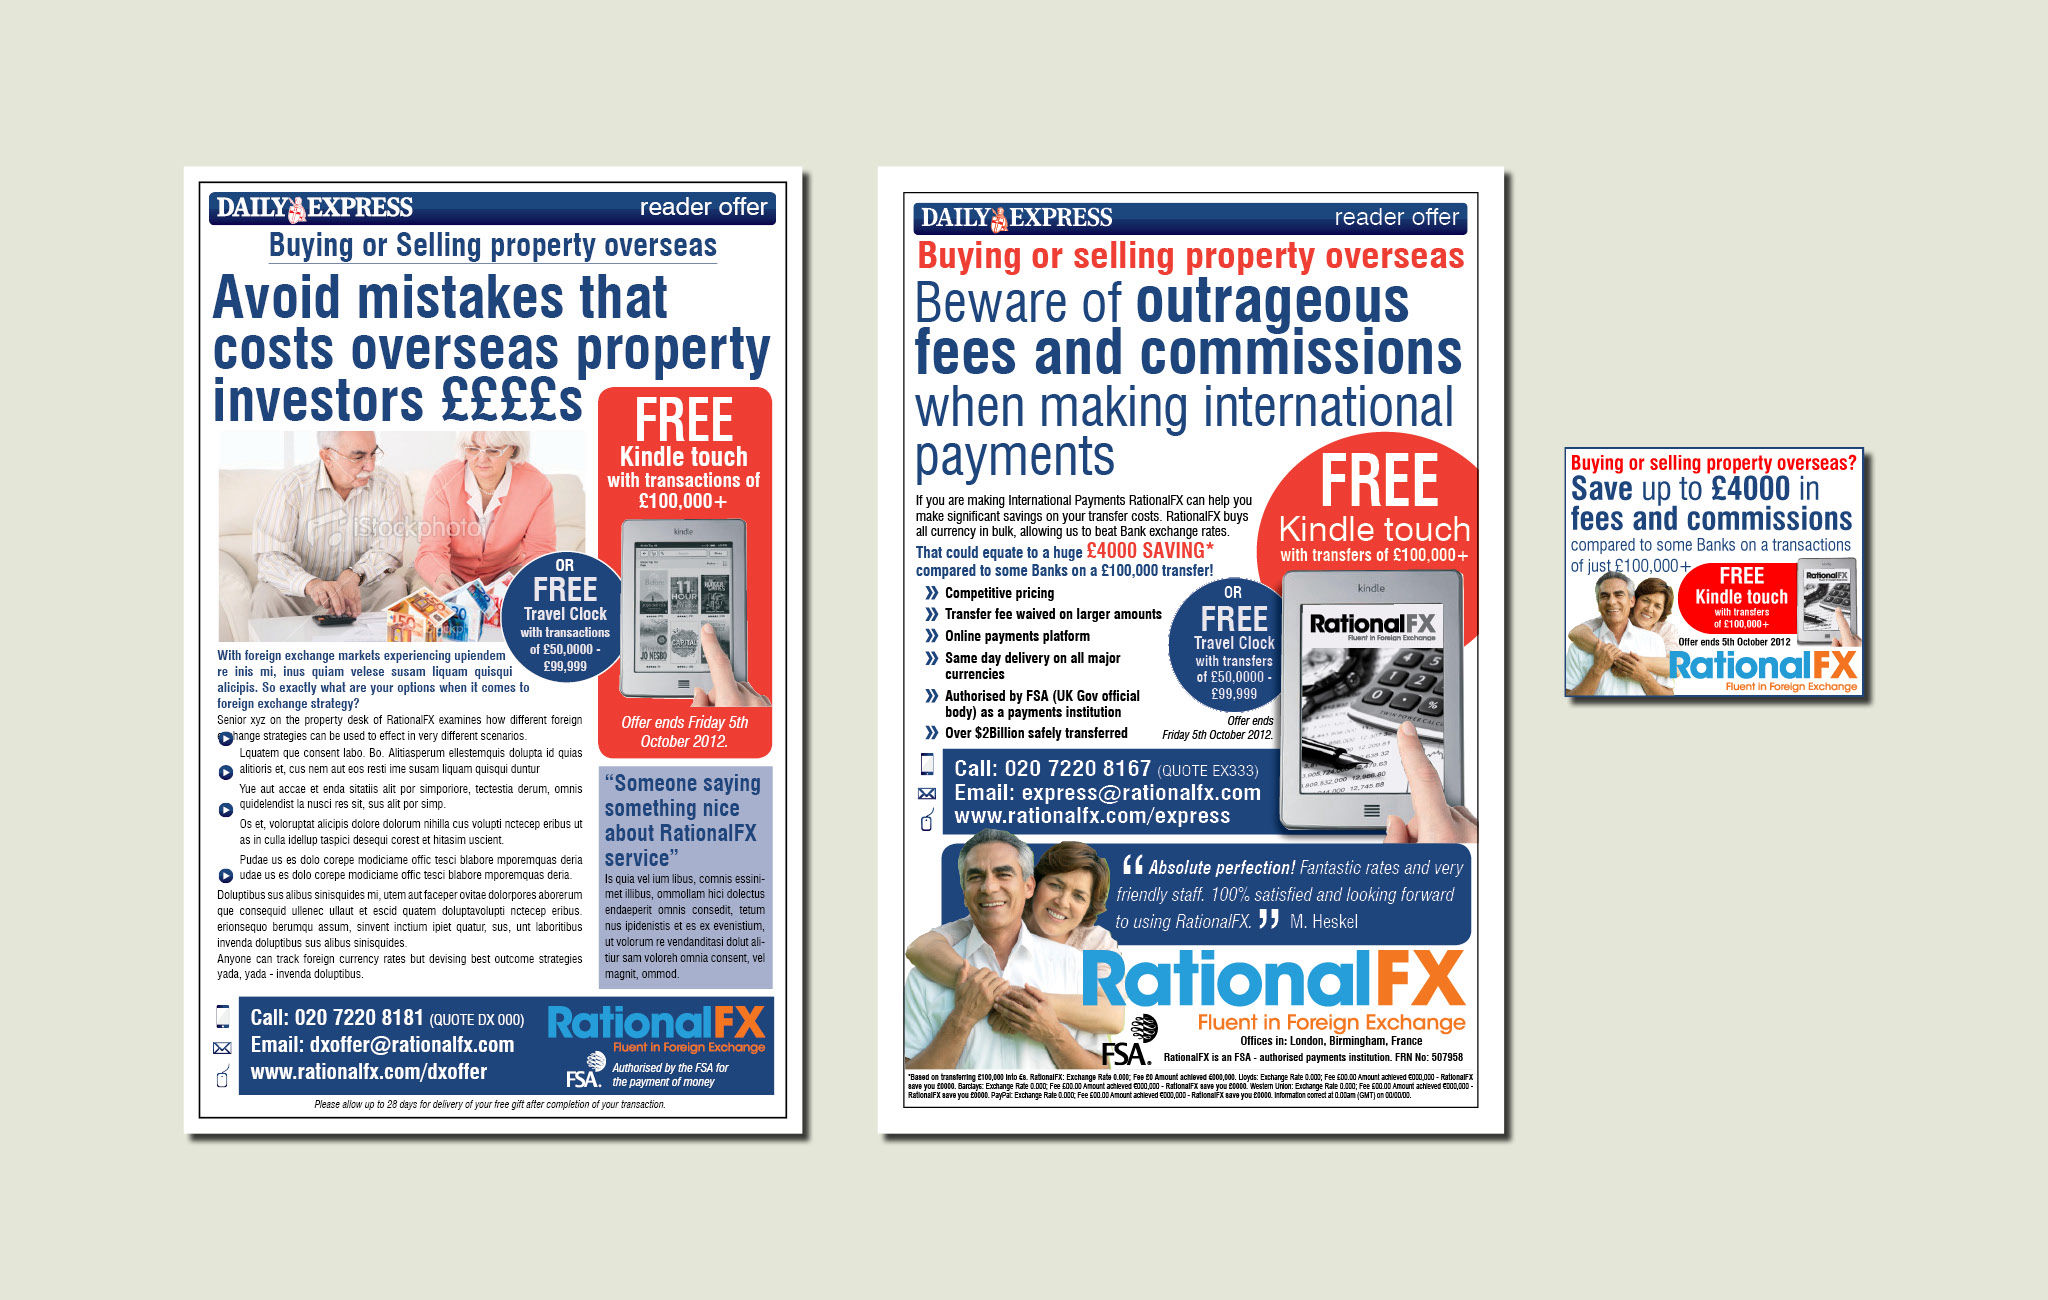 Daily Express Readers Offer Ad